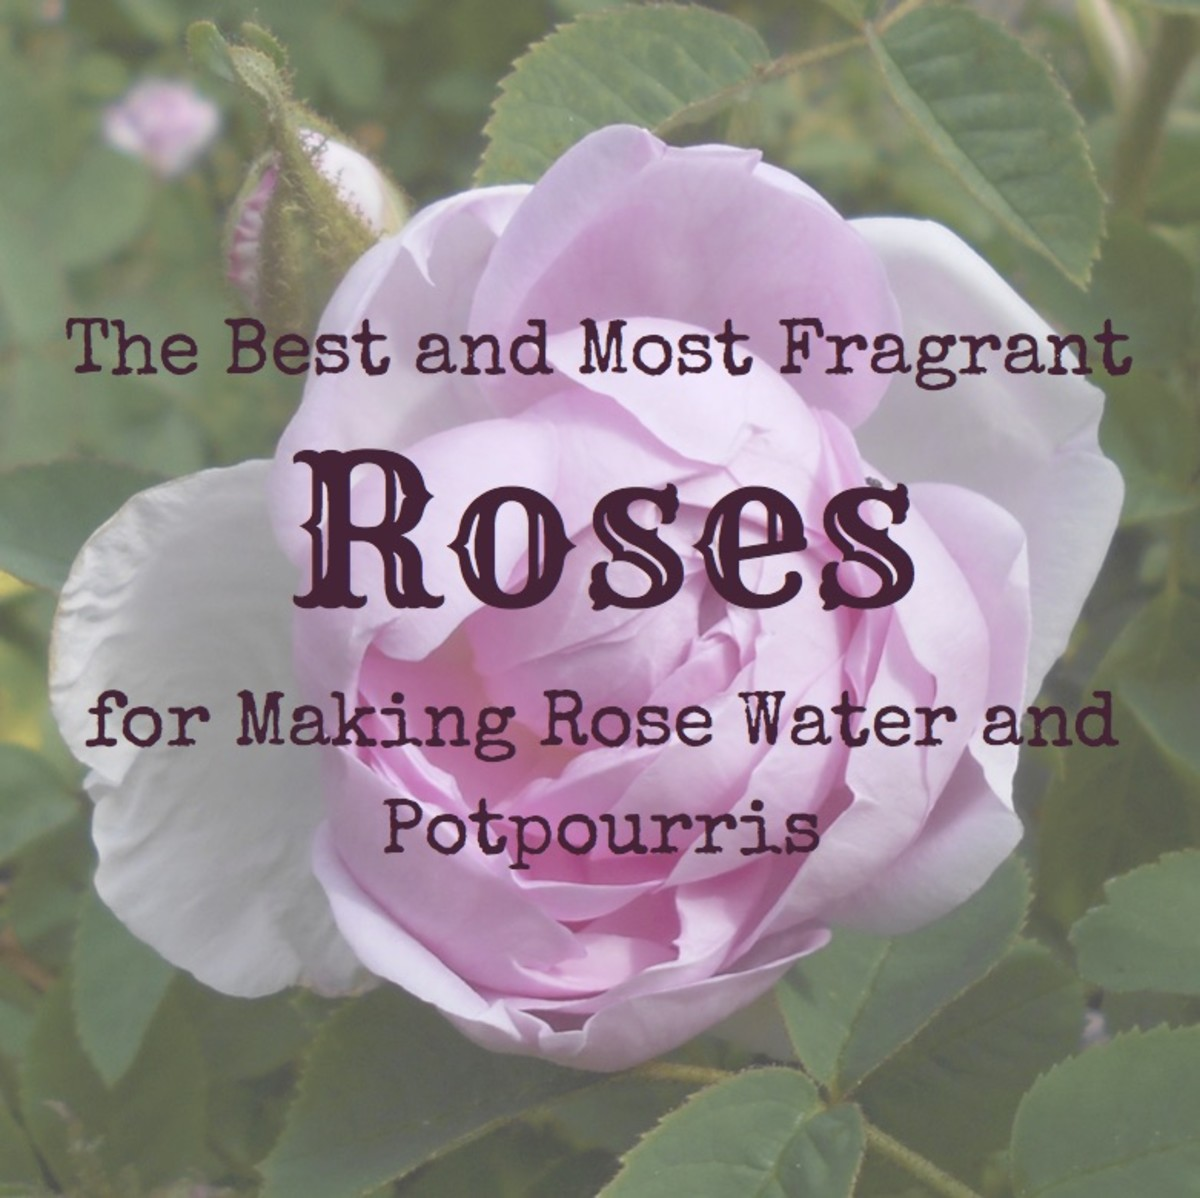 The Best and Most Fragrant Roses for Making Rose Water